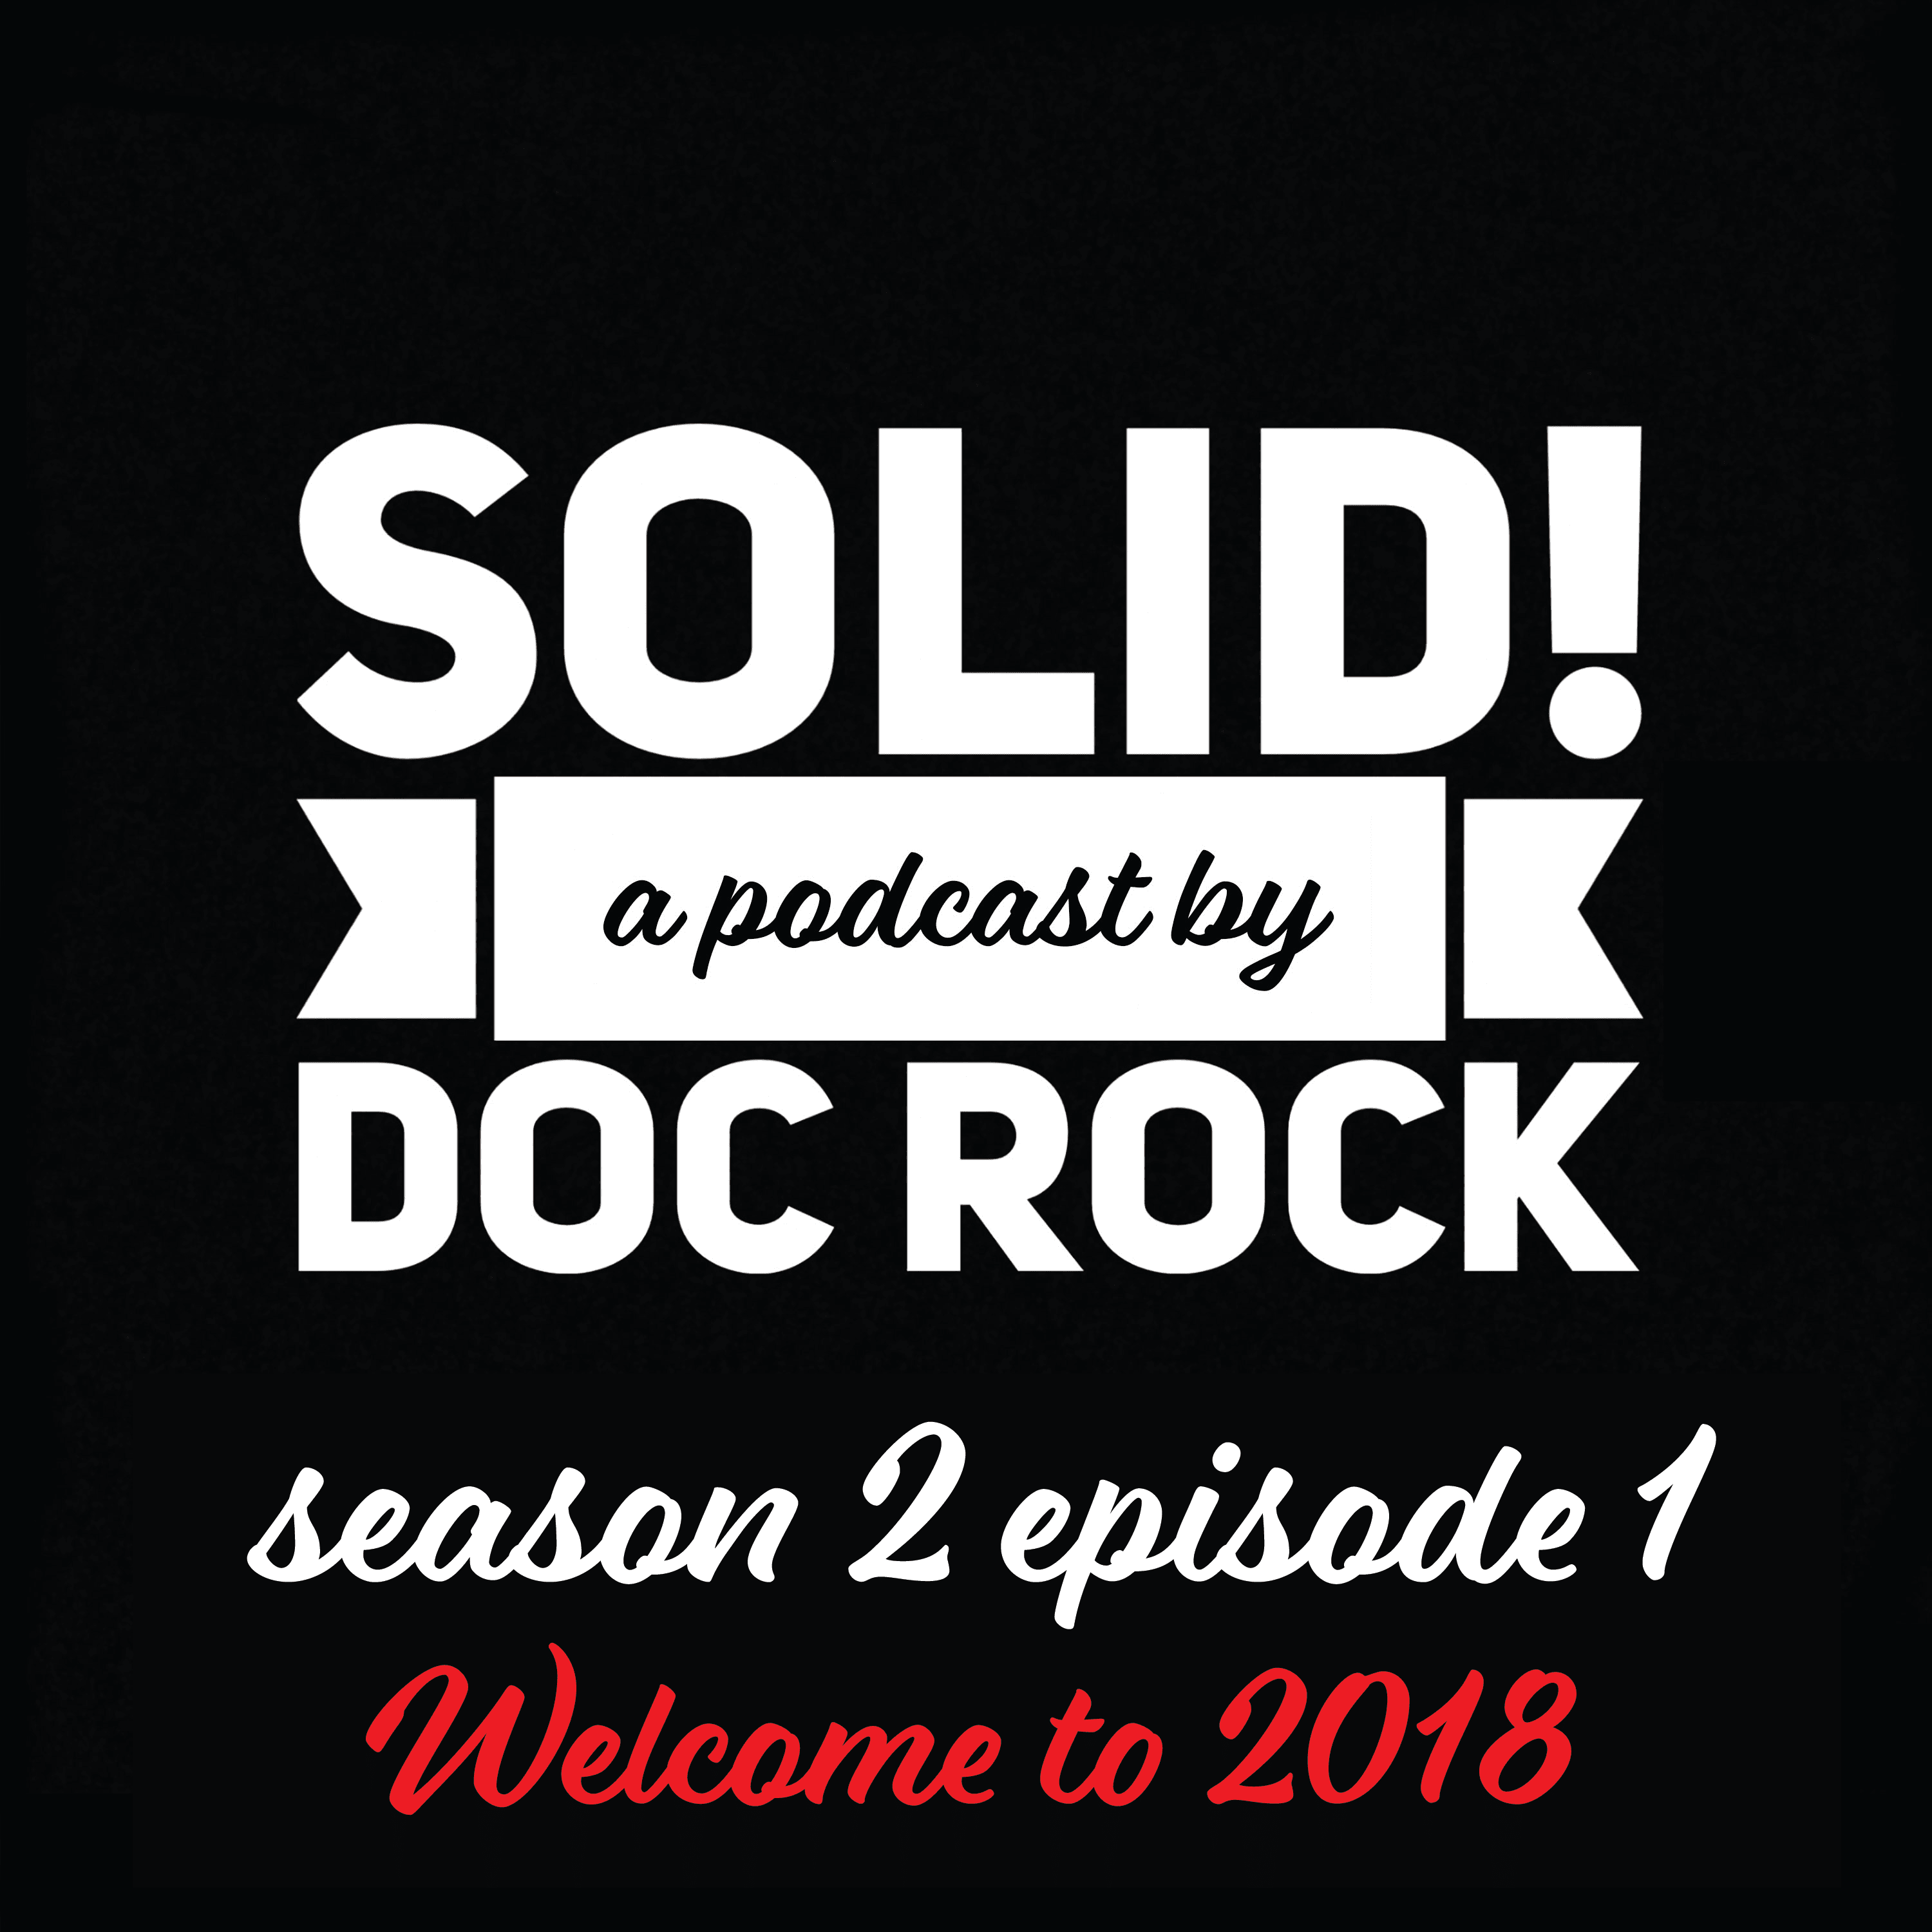 The Solid Podcast: Season 2 Episode 1 - Welcome to 2018